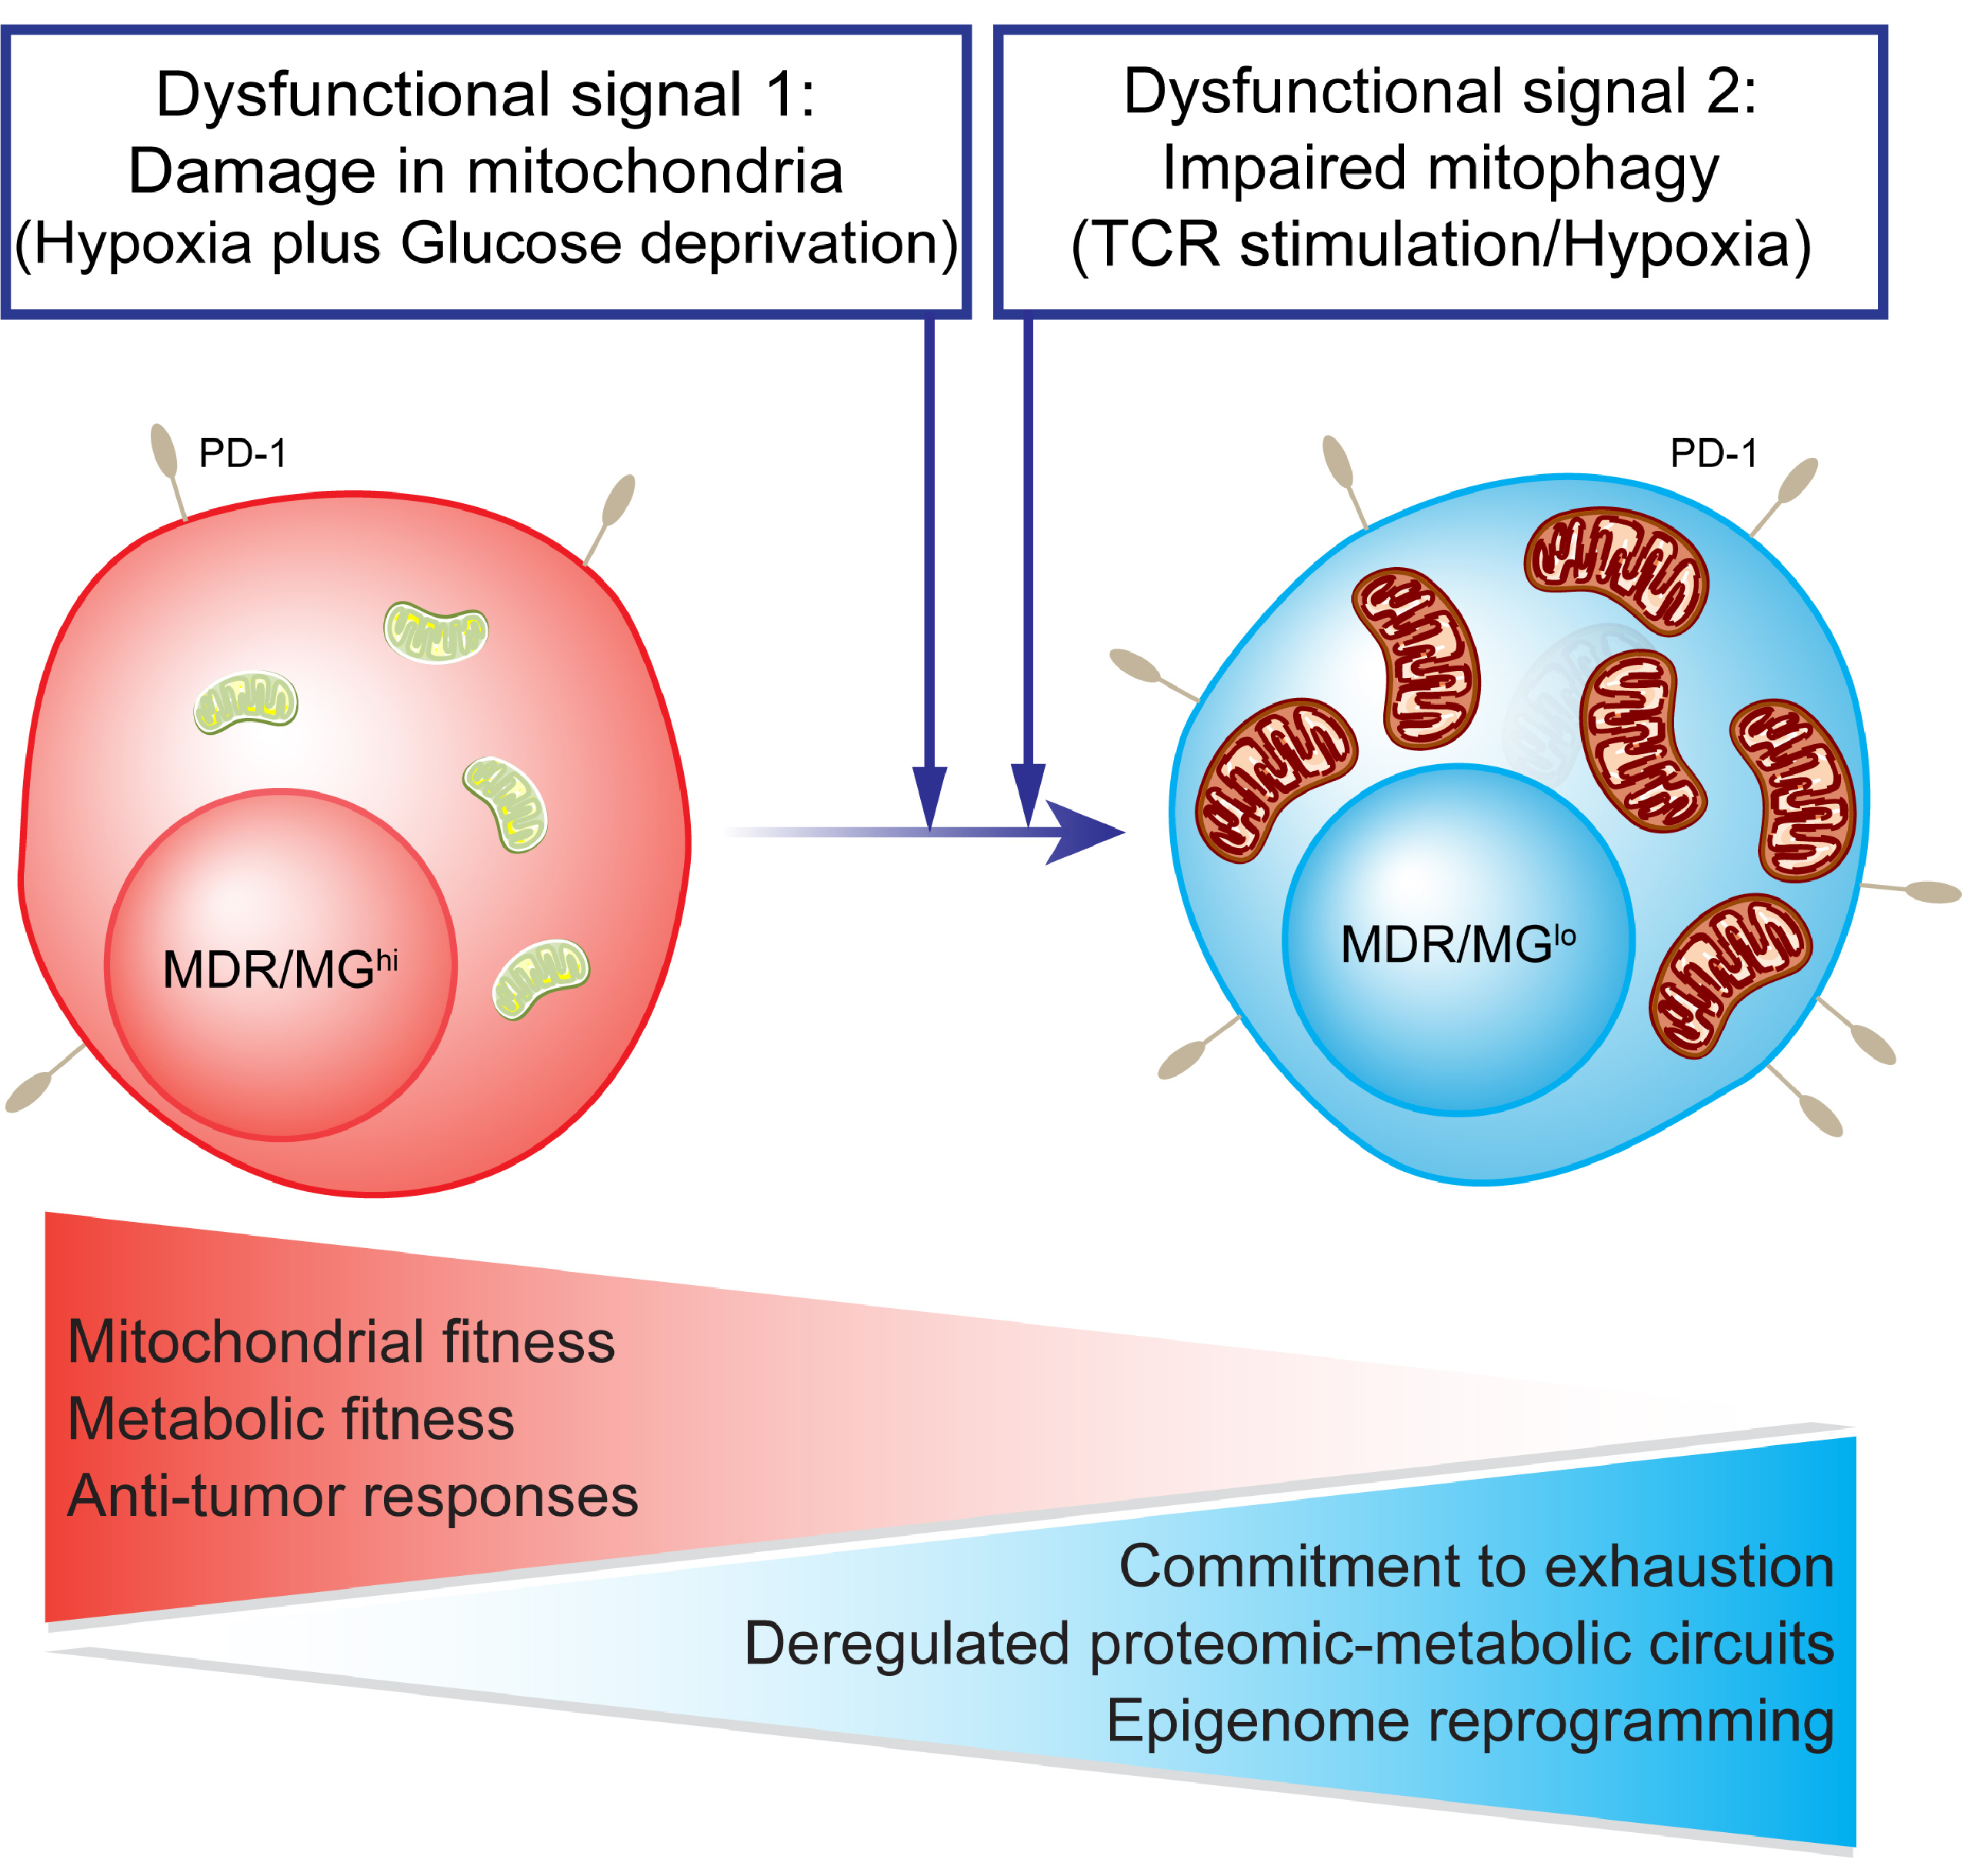 https://www.medical-epigenomics.org/papers/Yu2020/img/1_Tcells_exhaustion_overview-01.jpg